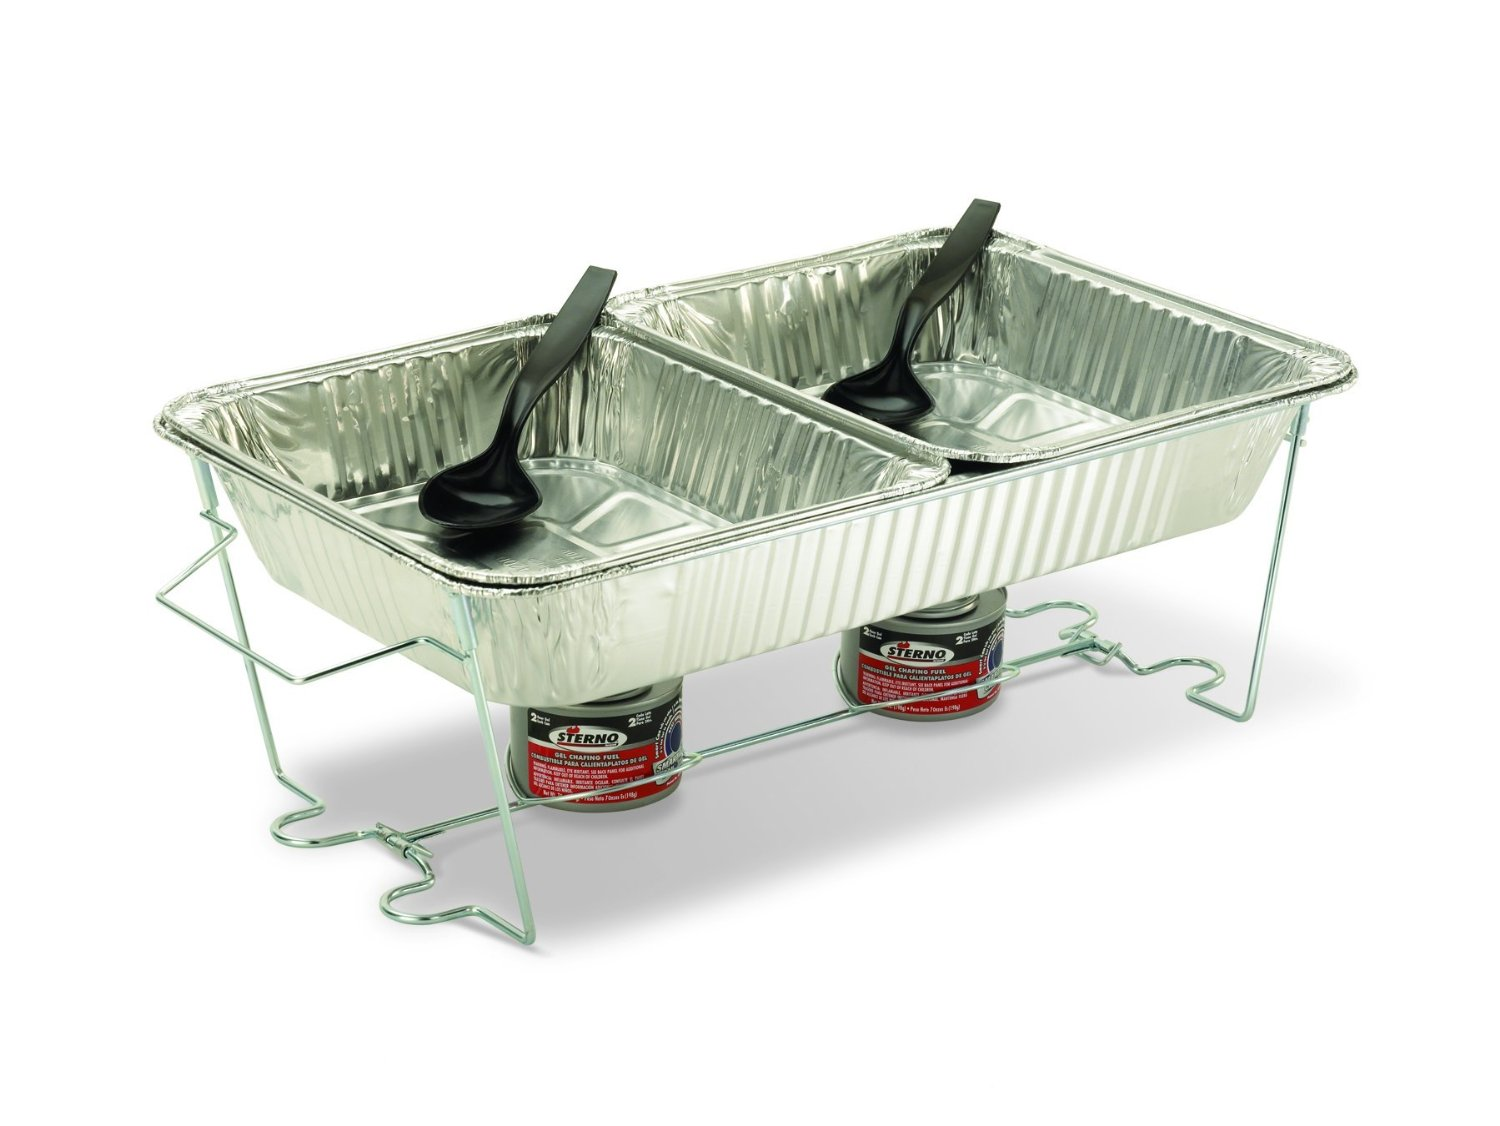 Catering Chafer Set Image